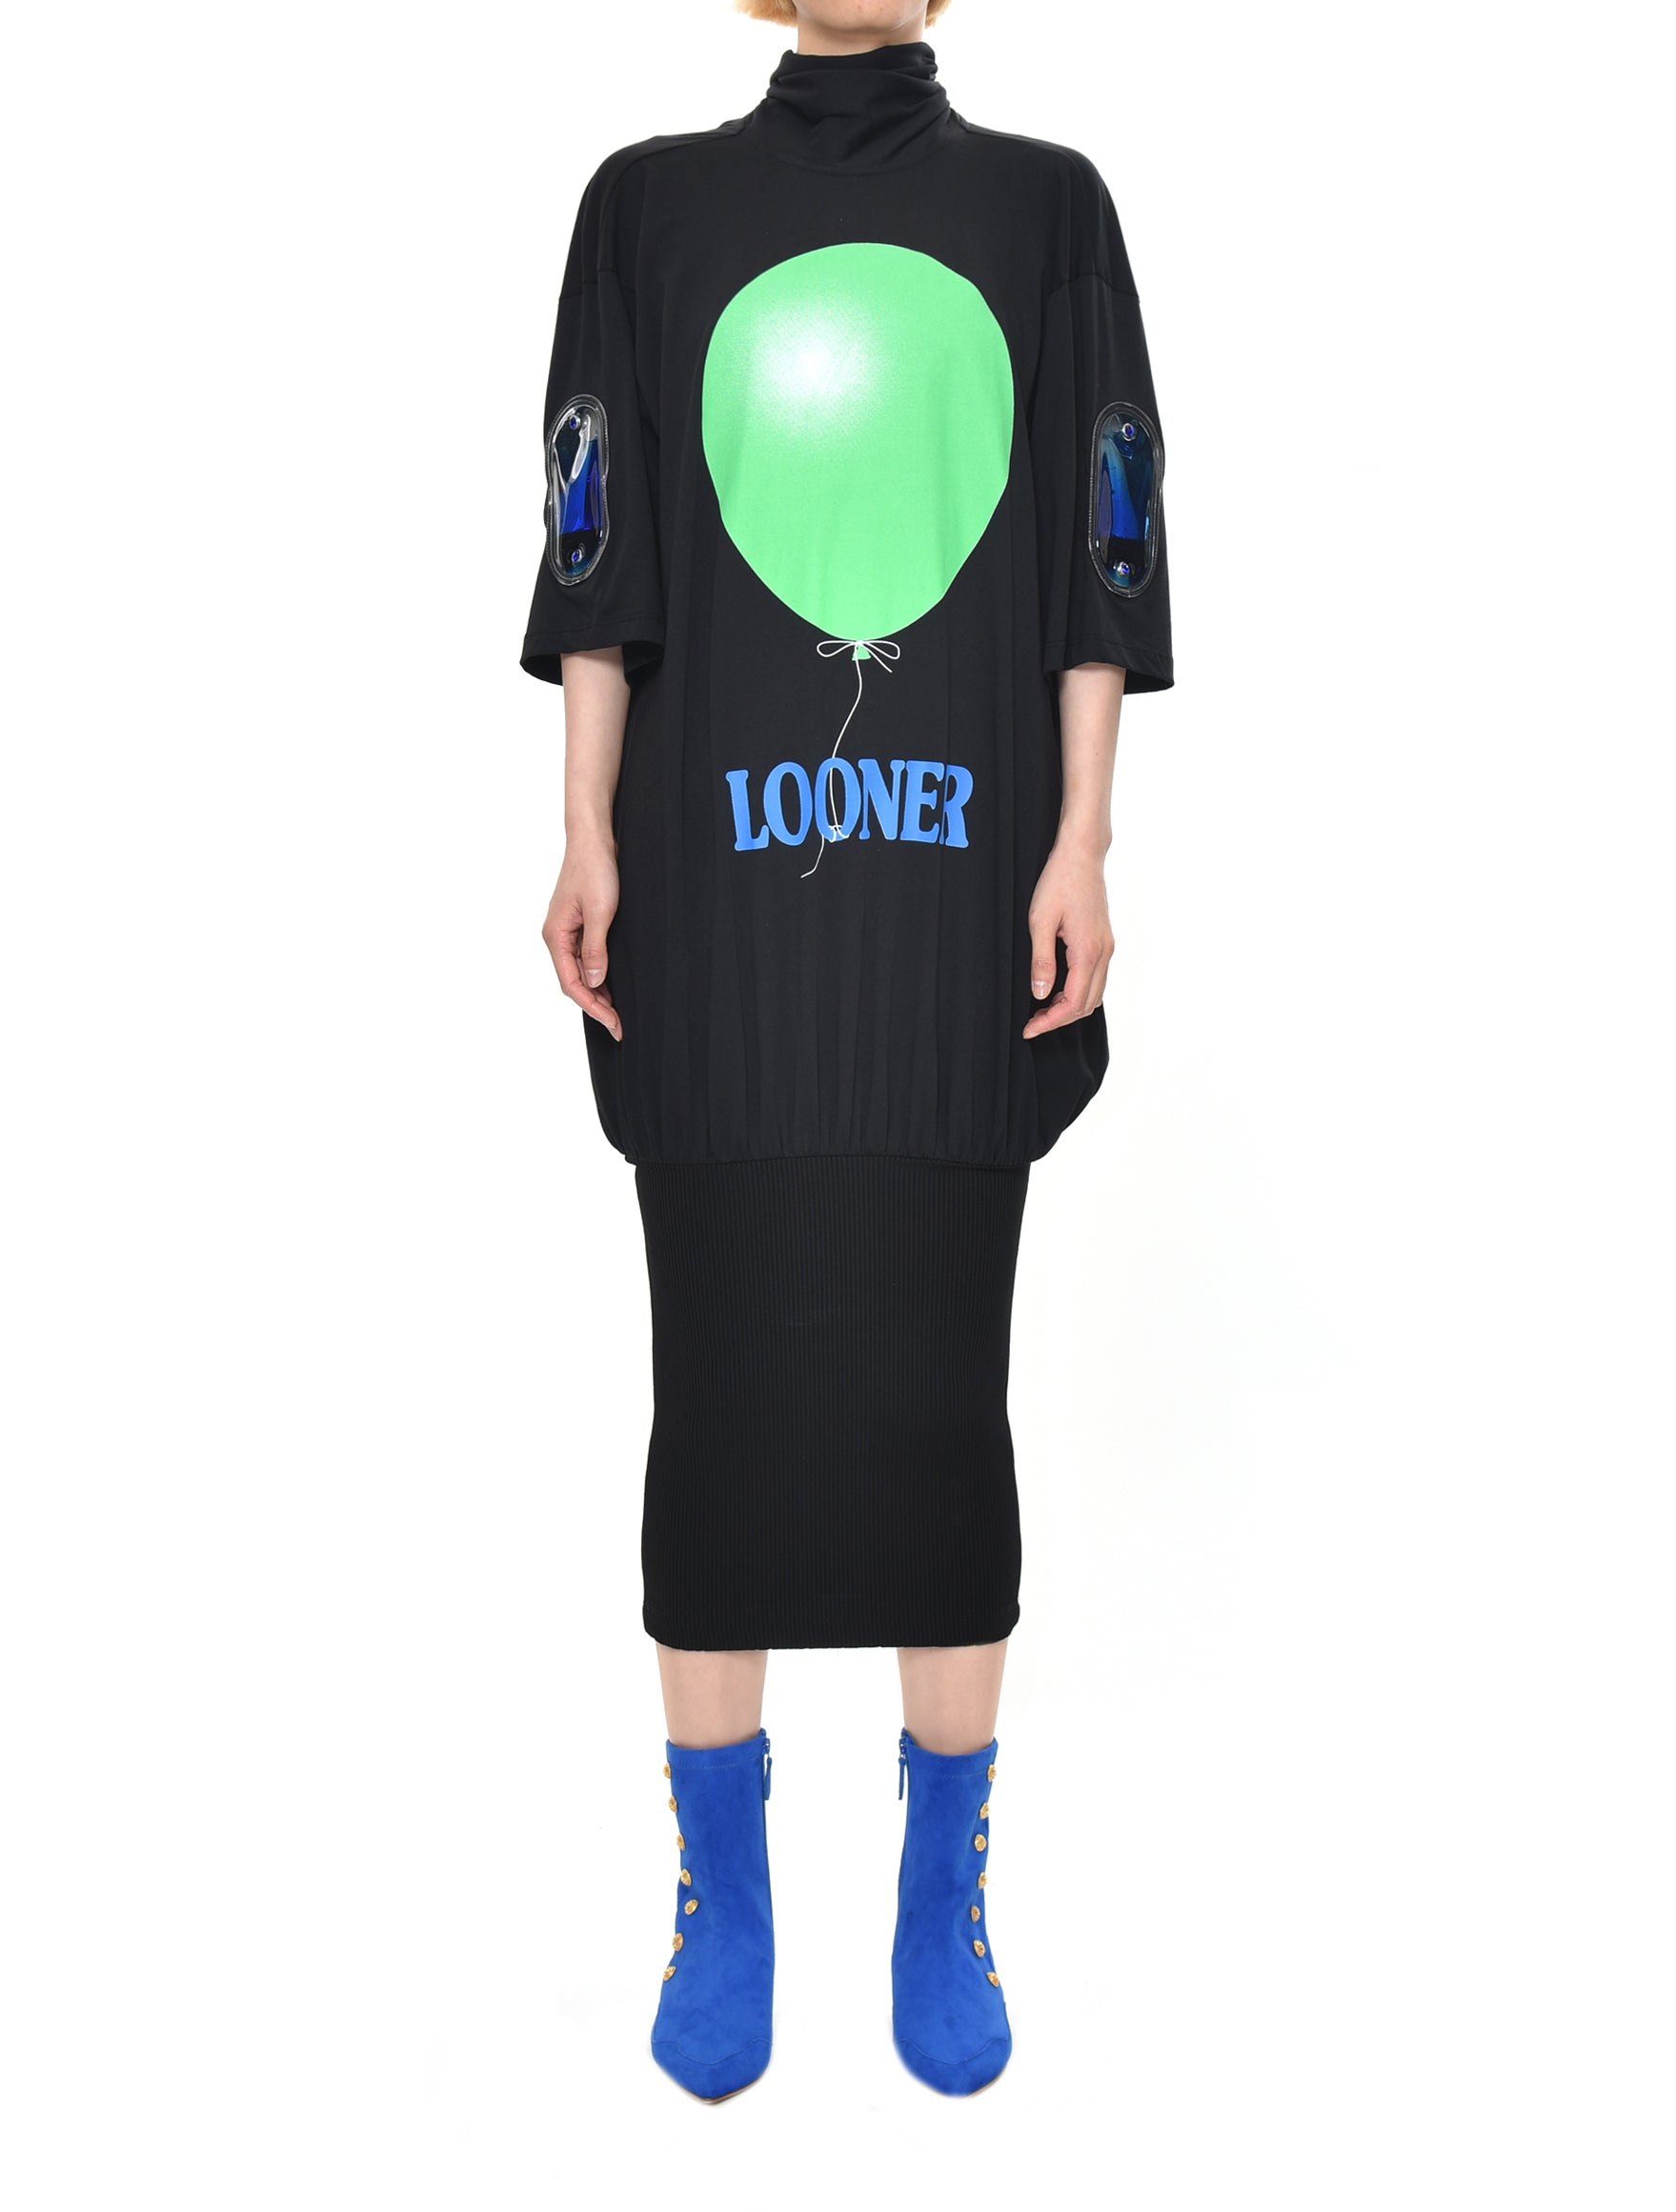 Looner Tie Jersey Dress